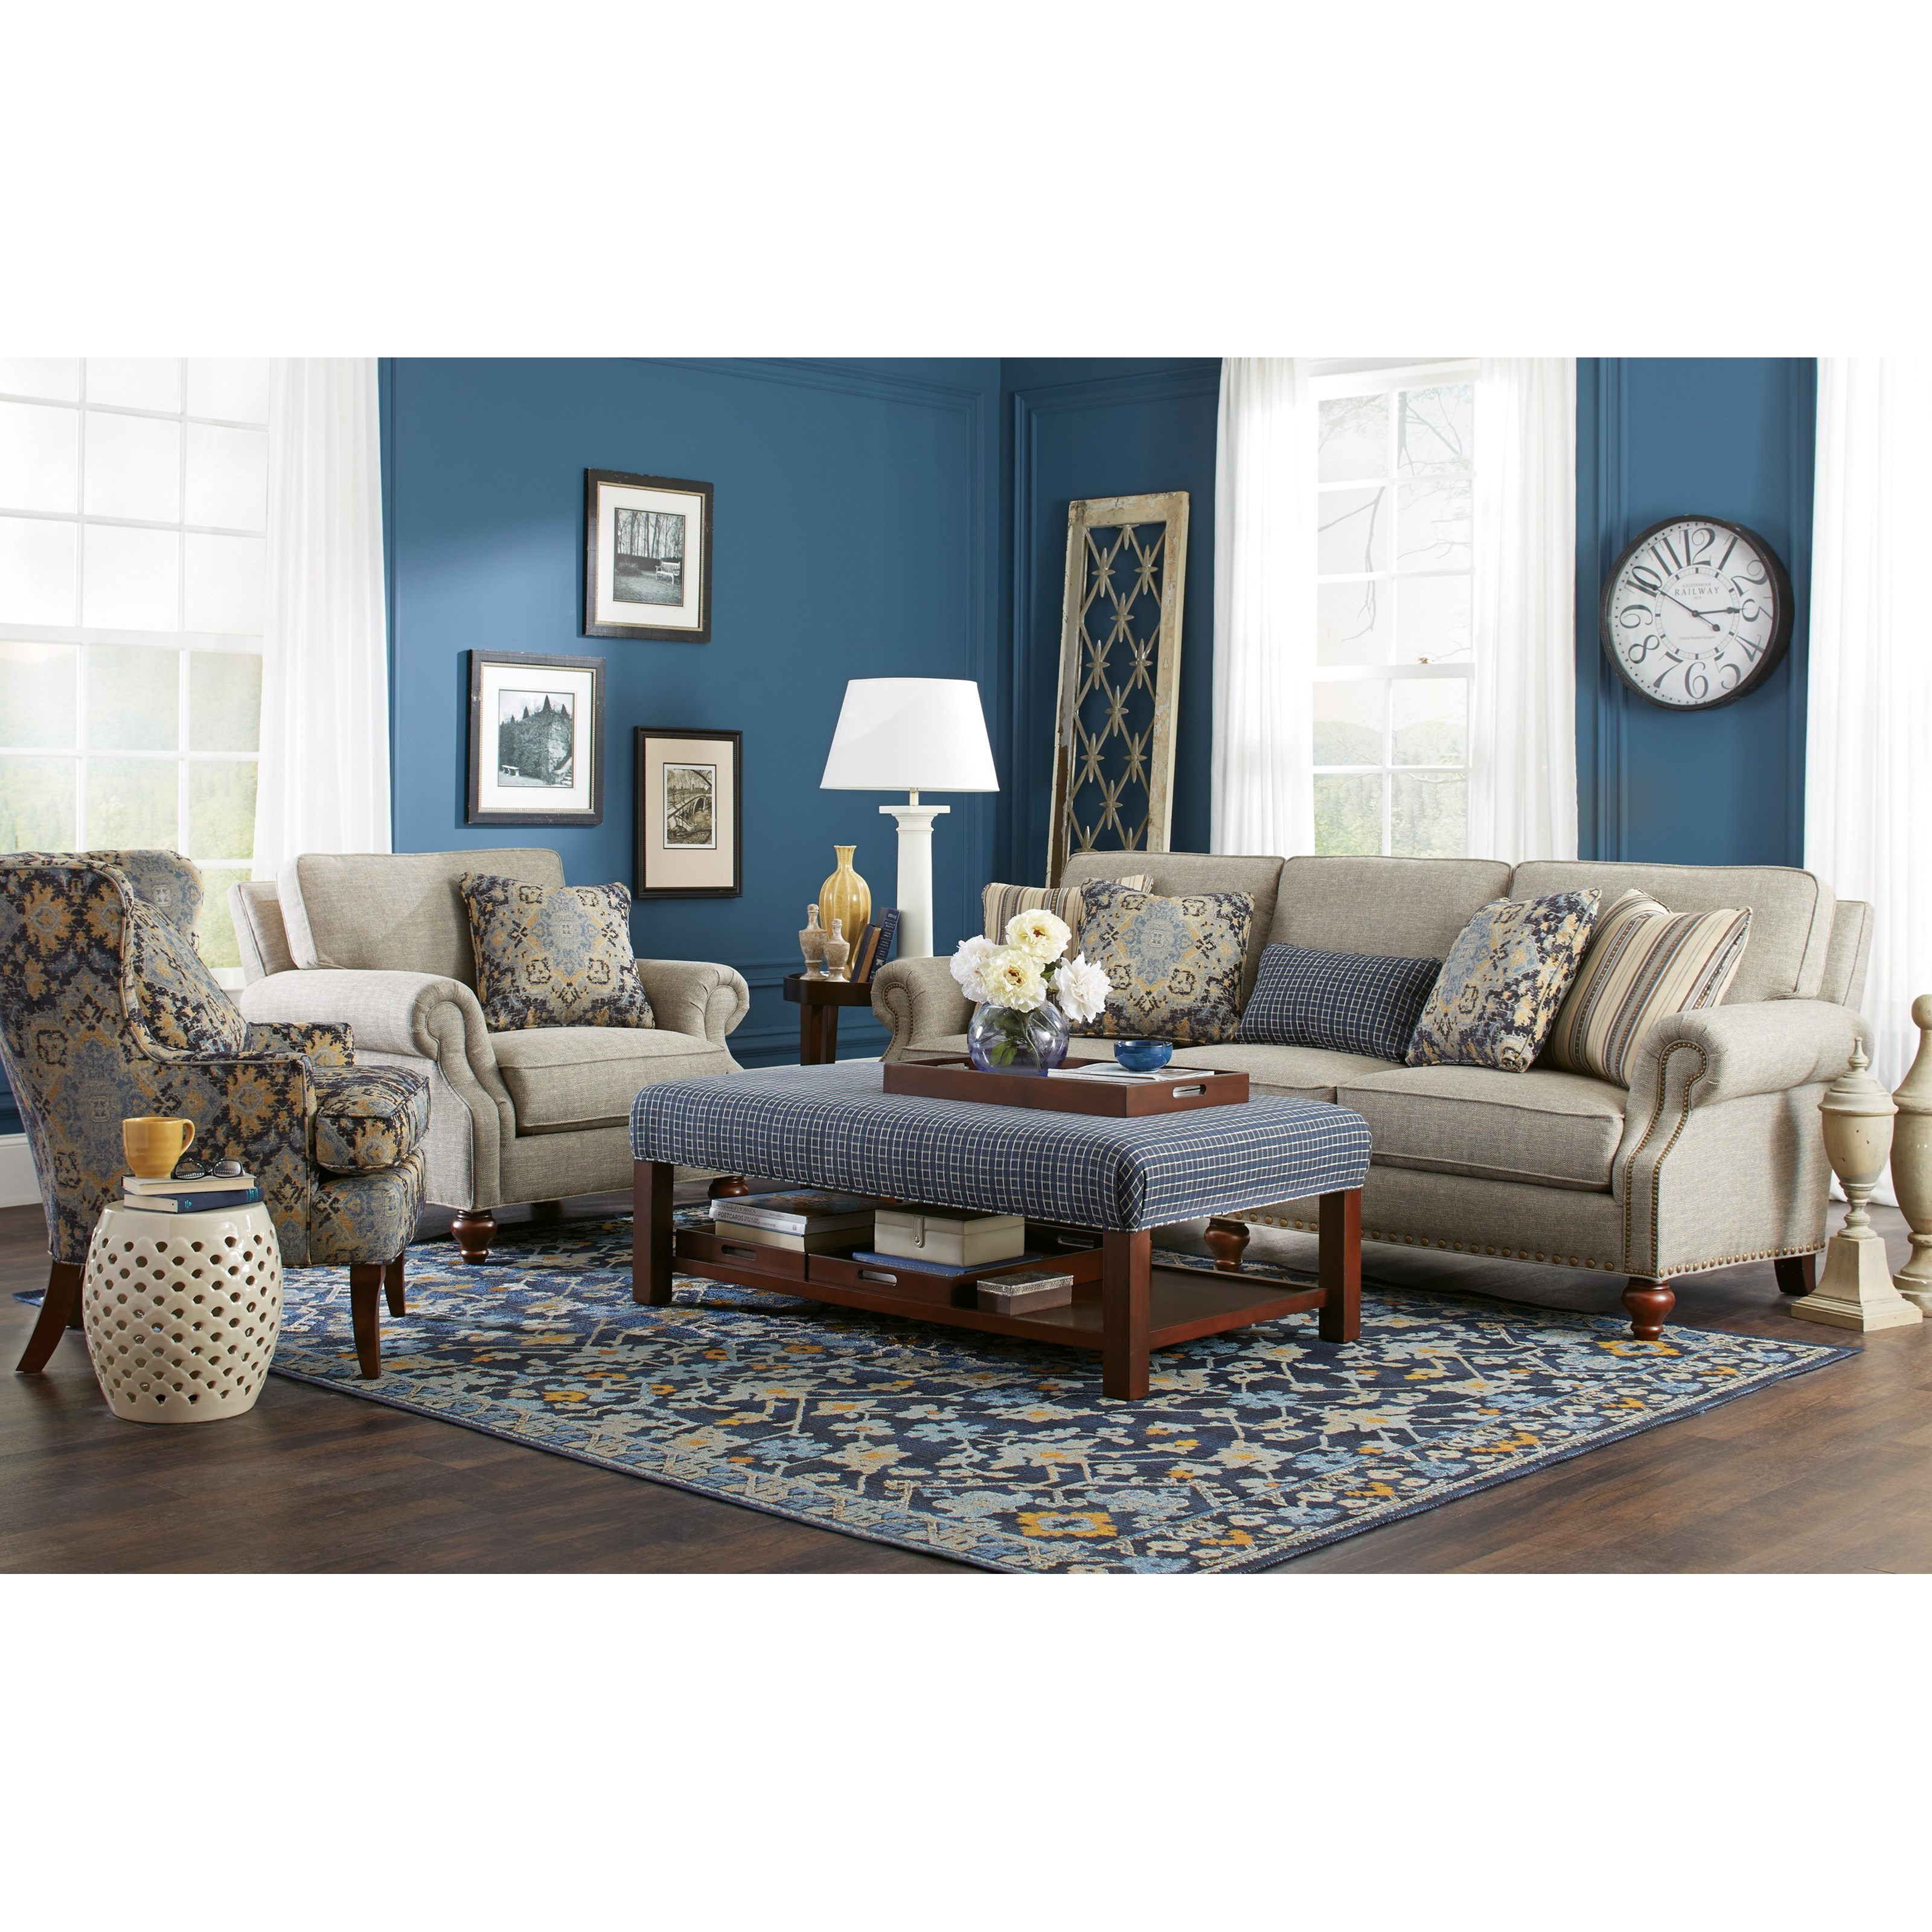 7623 Living Room Group by Craftmaster at Suburban Furniture